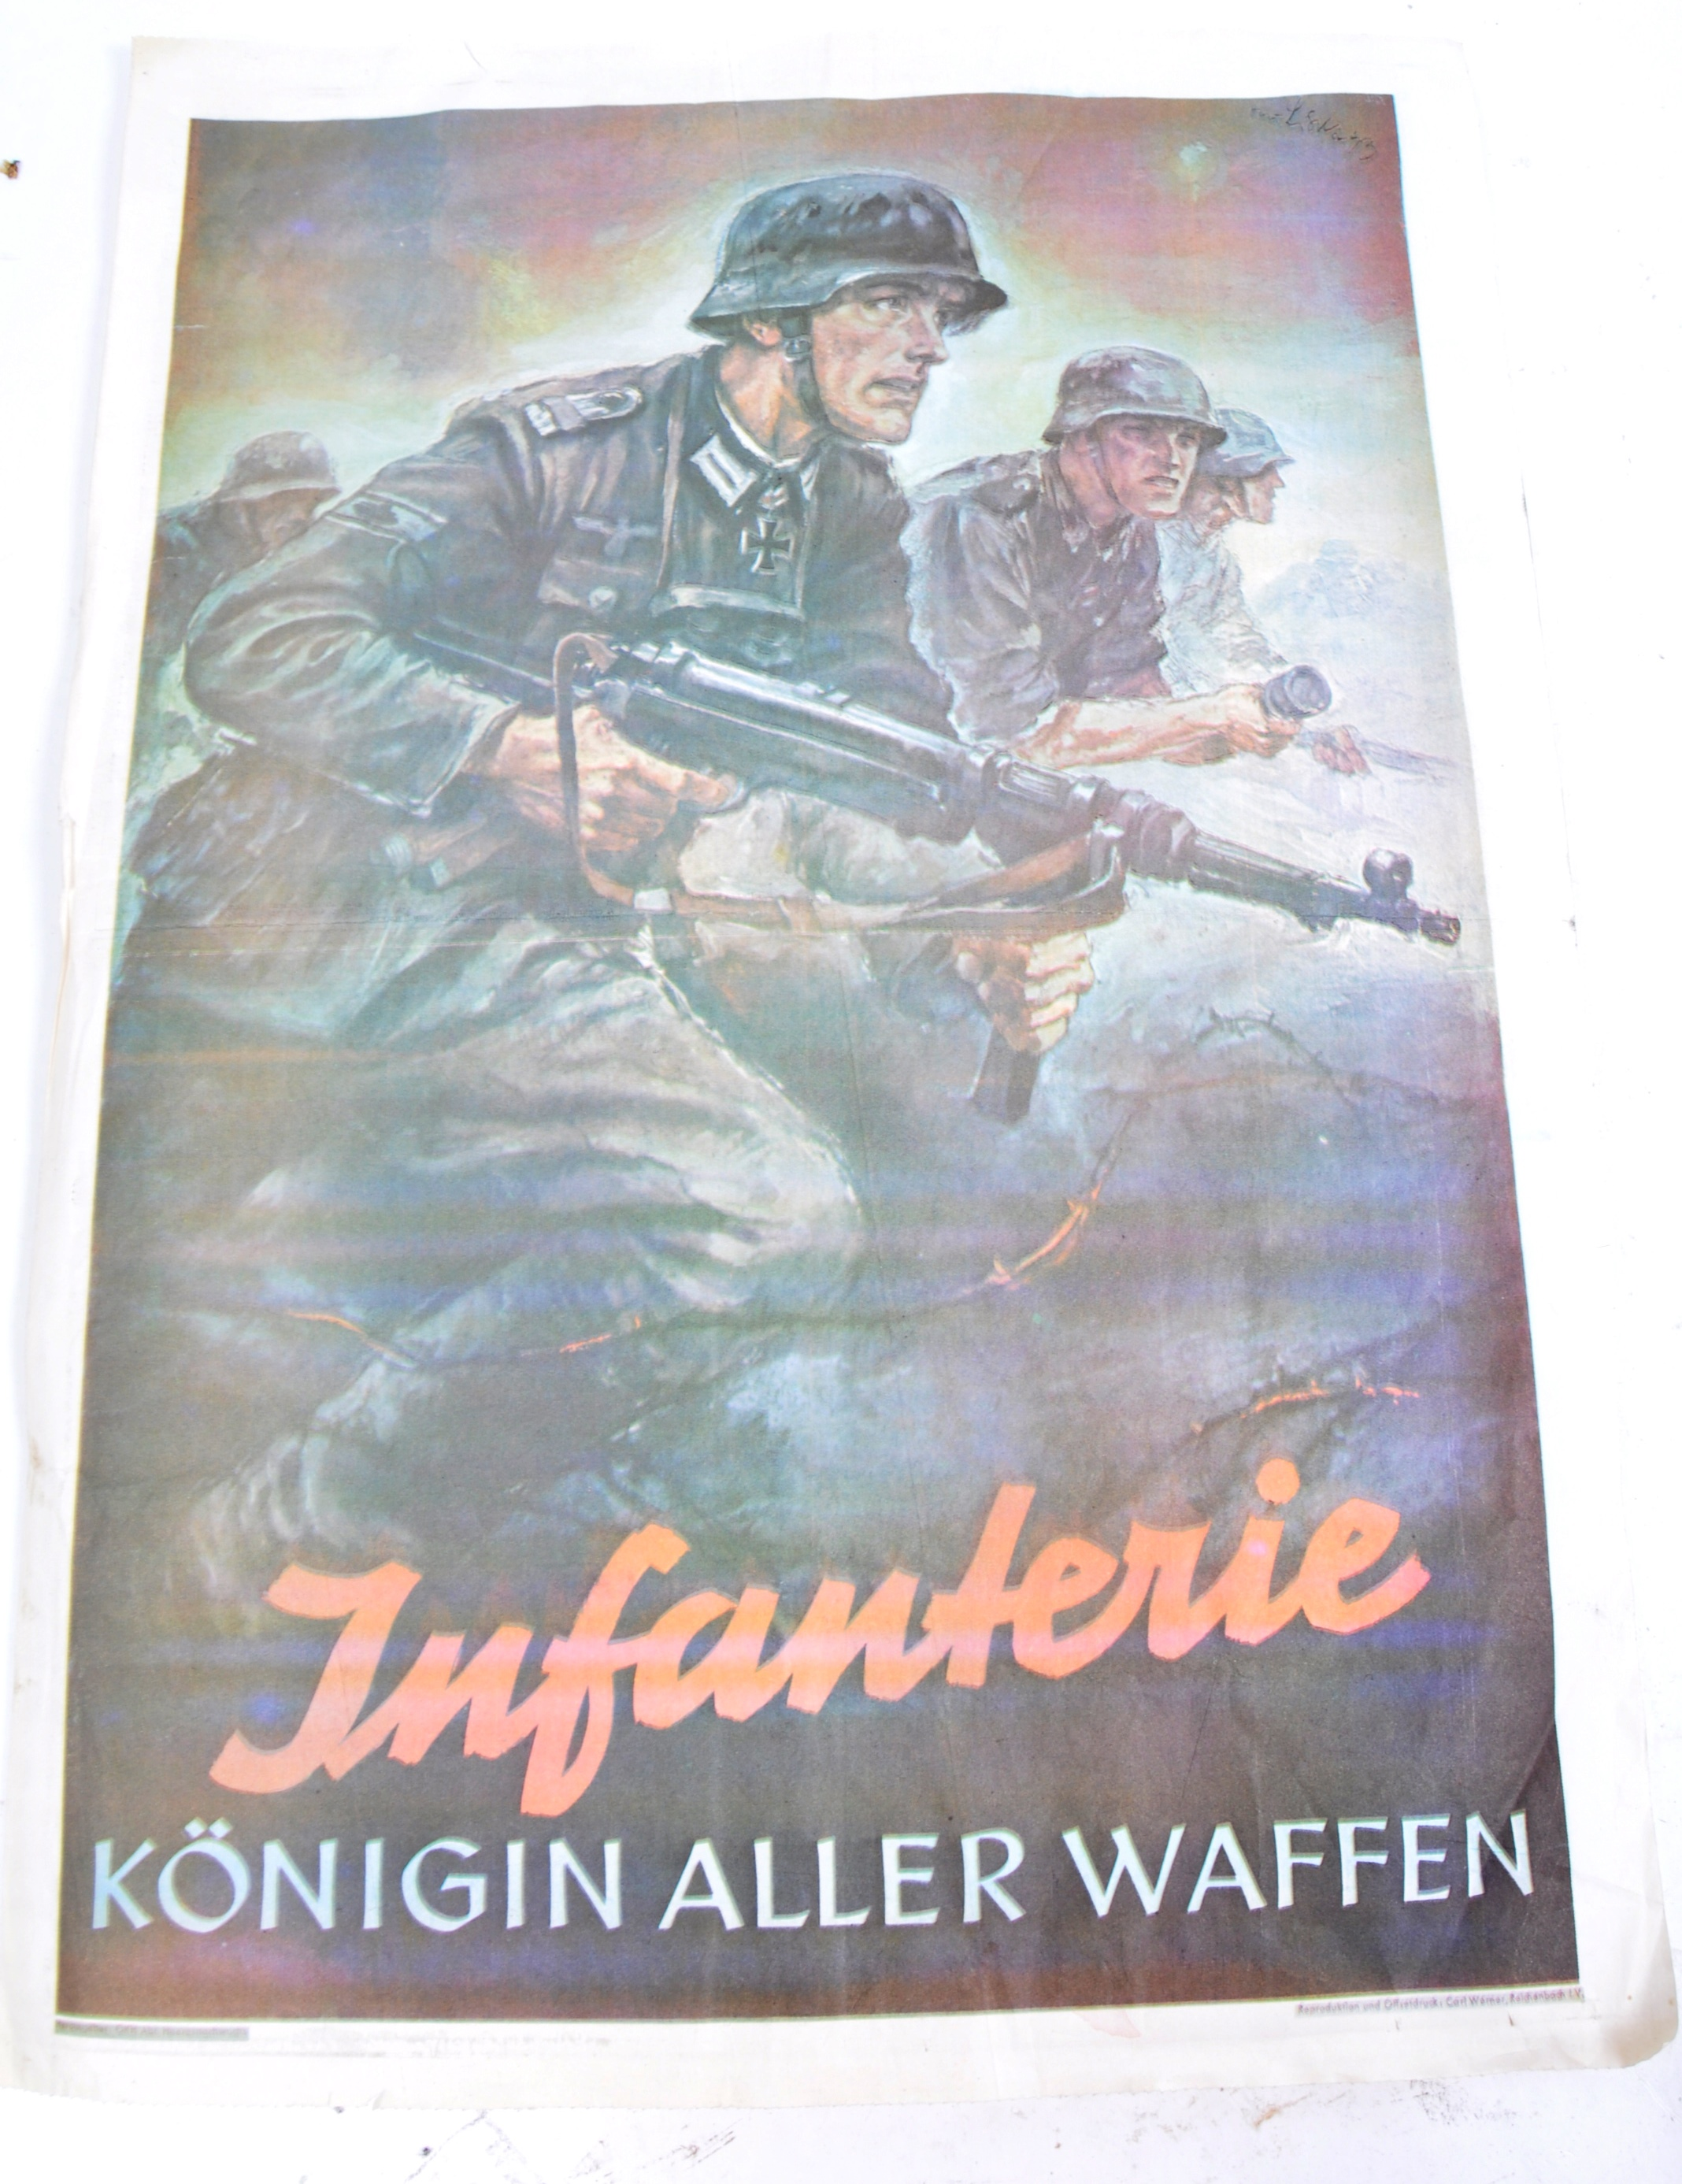 WWII SECOND WORLD WAR POSTERS - ENGLISH, GERMAN & OTHERS - Image 8 of 8